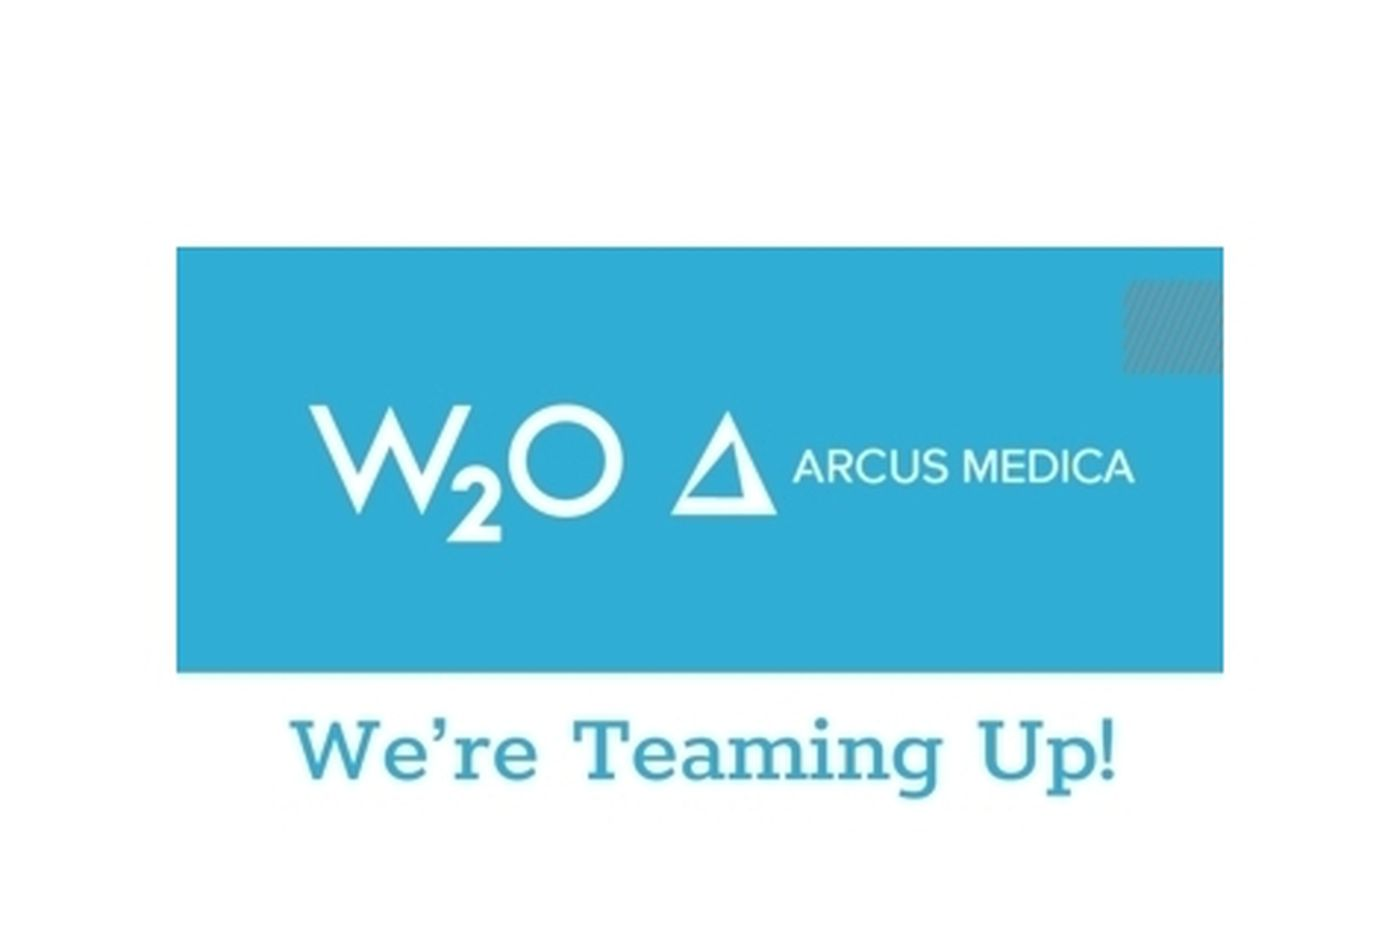 Arcus Medica, Philly communications firm, hiring after merger with Wall Street-backed neighbor